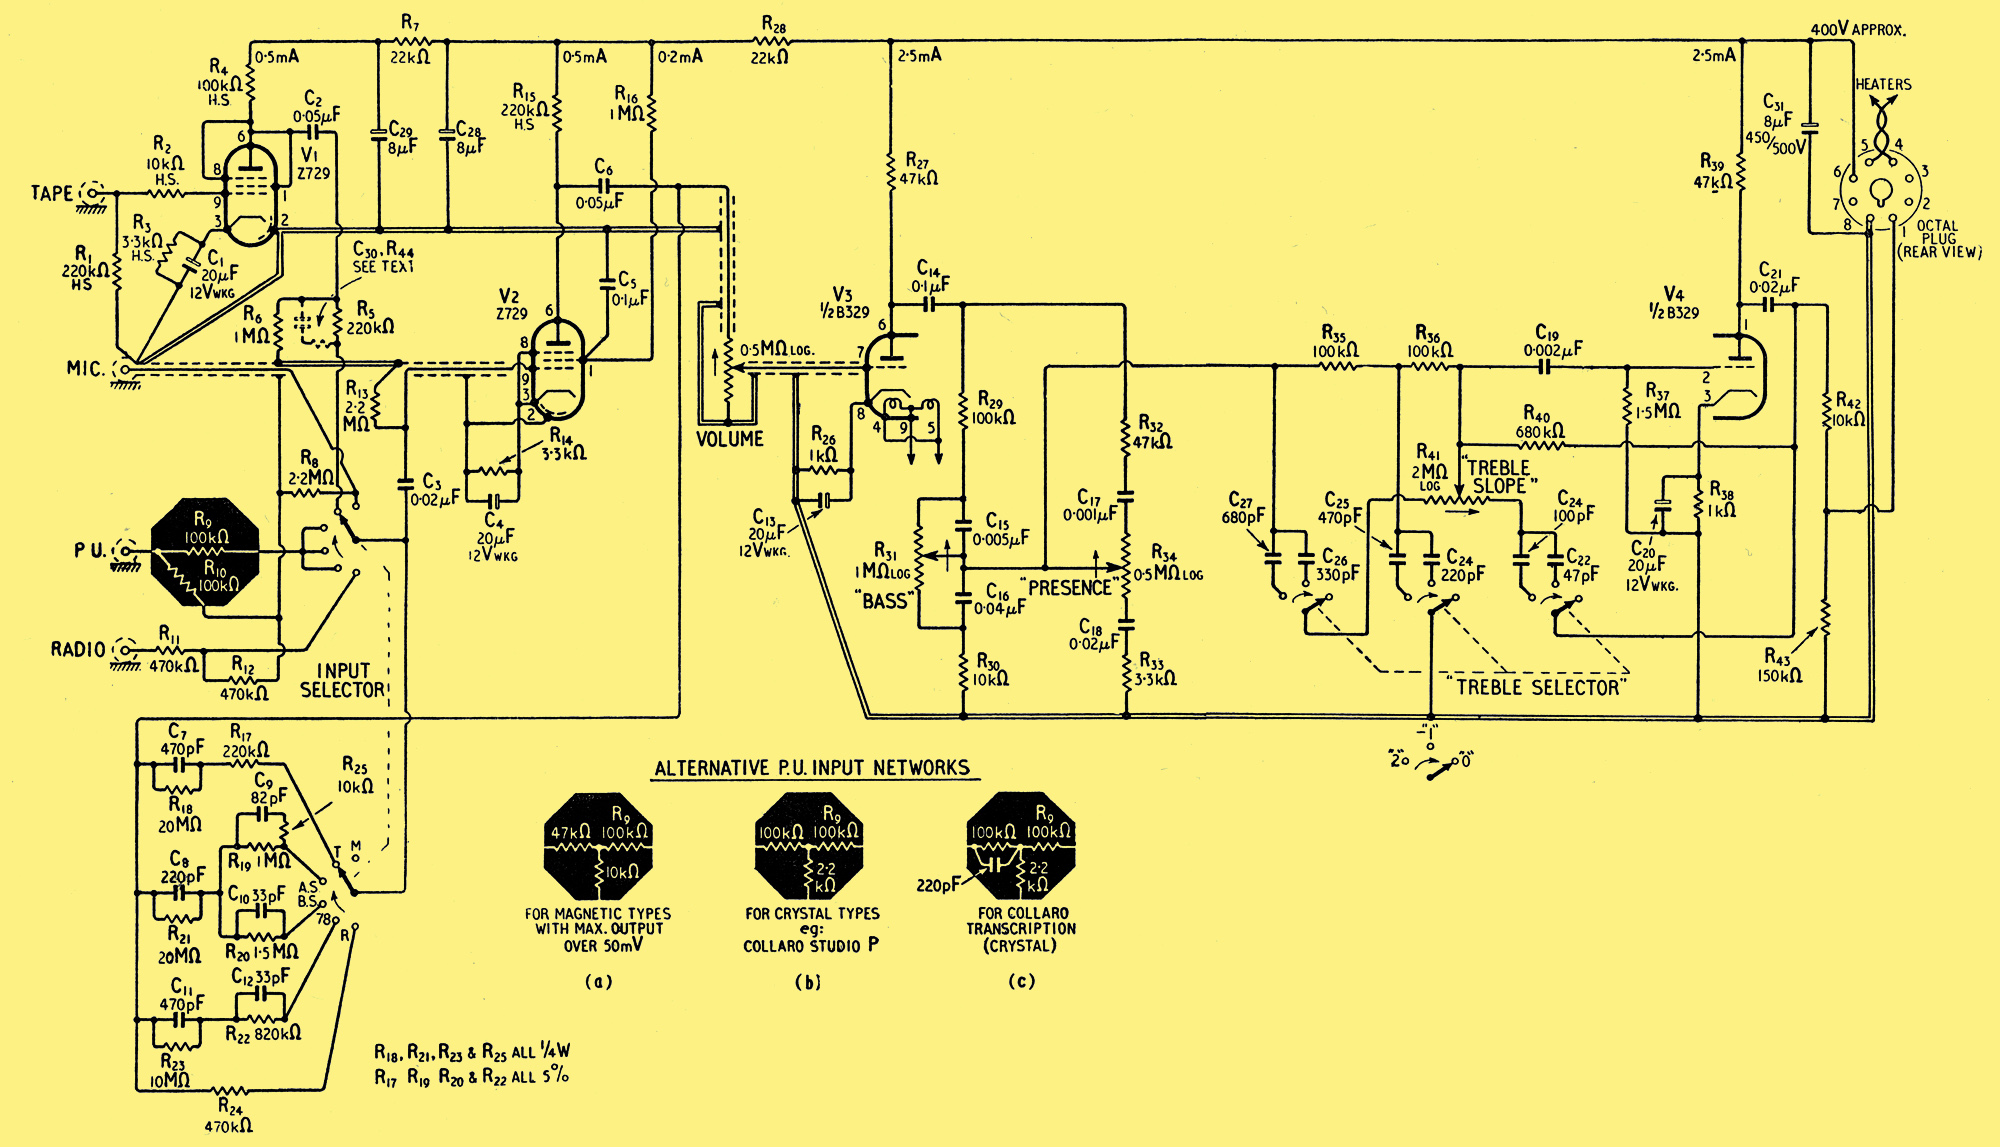 88 50 Pre Amplifier Circuit Of C7 C12 C22 C27 Are Silvered Mica 5 Resistors 025 W 10 Unless Marked H S When High Stability Type